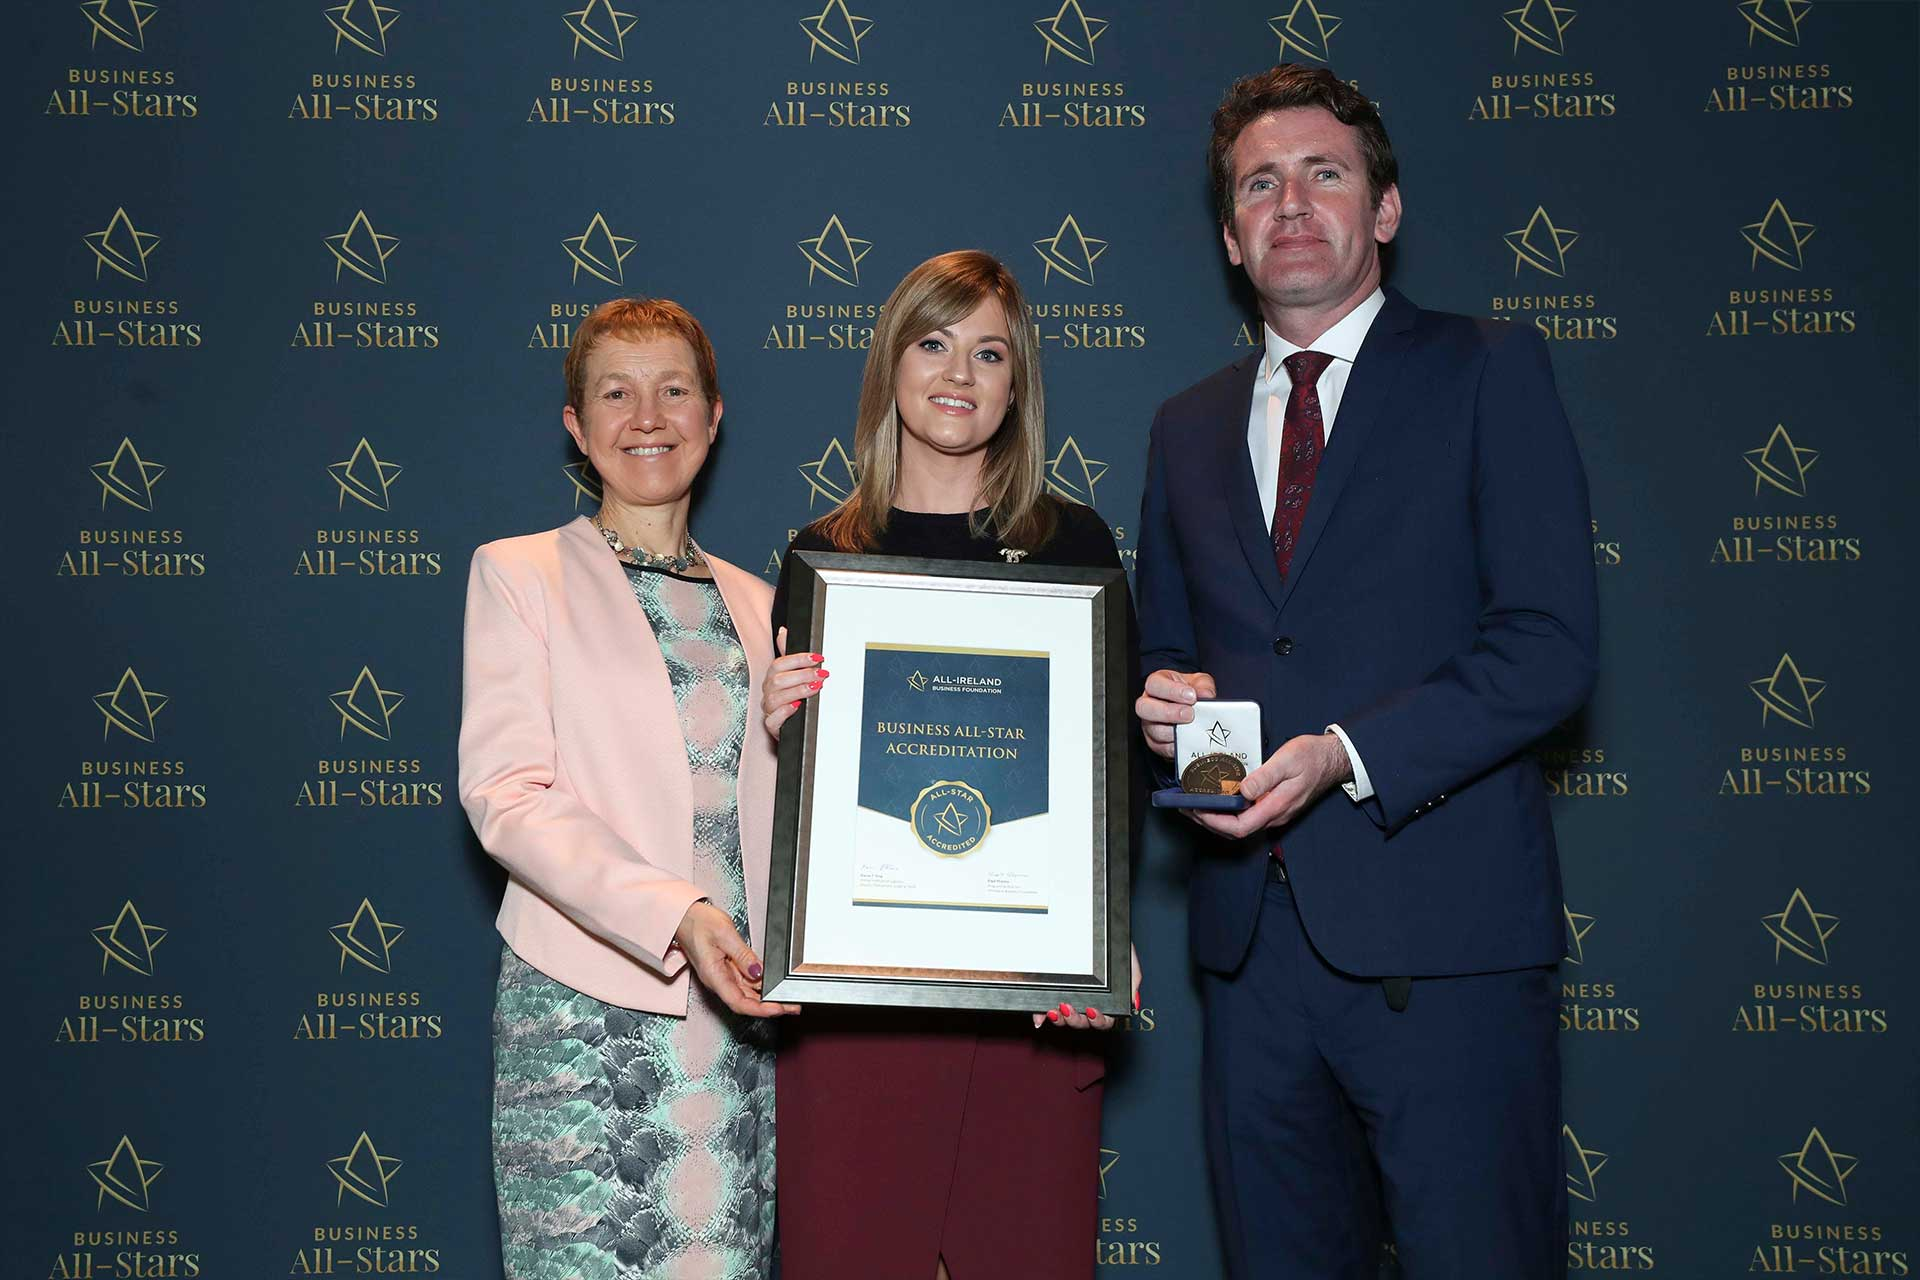 Shauna Coyne - SkyClad receiving Business All-Star Accreditation at Croke Park from Dr Briga Hynes, Kemmy Business School, University of Limerick and Senator Aodhán Ó Ríordáin, Spokesperson on Education and Skills, Gaeilge and the Gaeltacht.